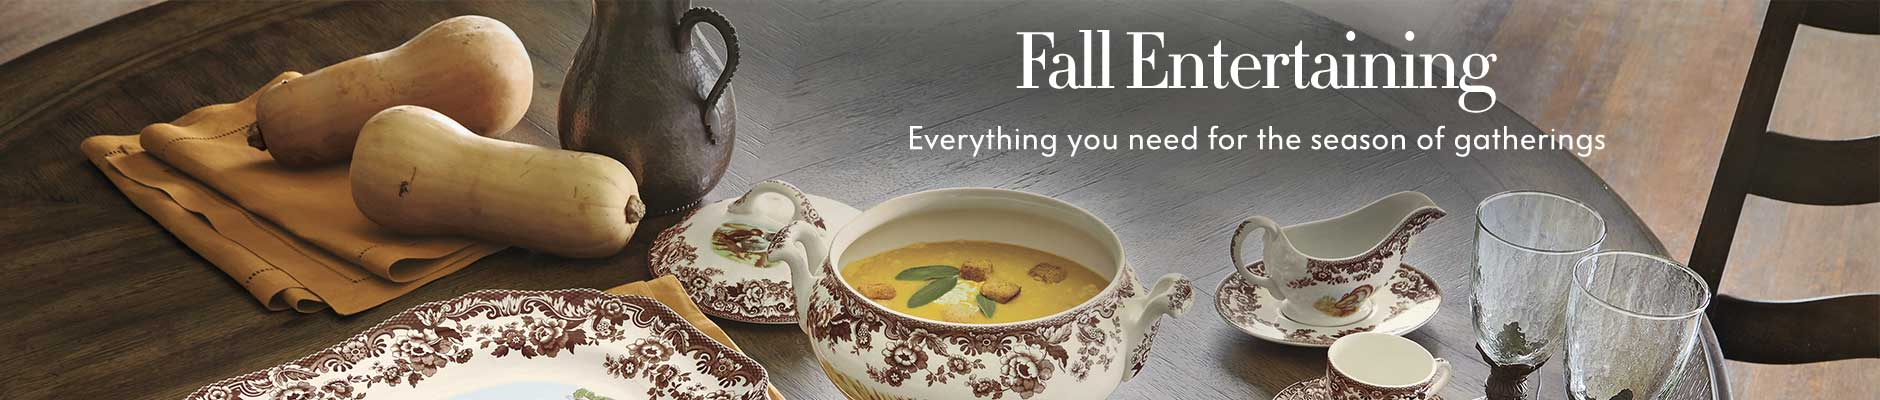 Fall Entertaining - Everything you need for the season of gatherings